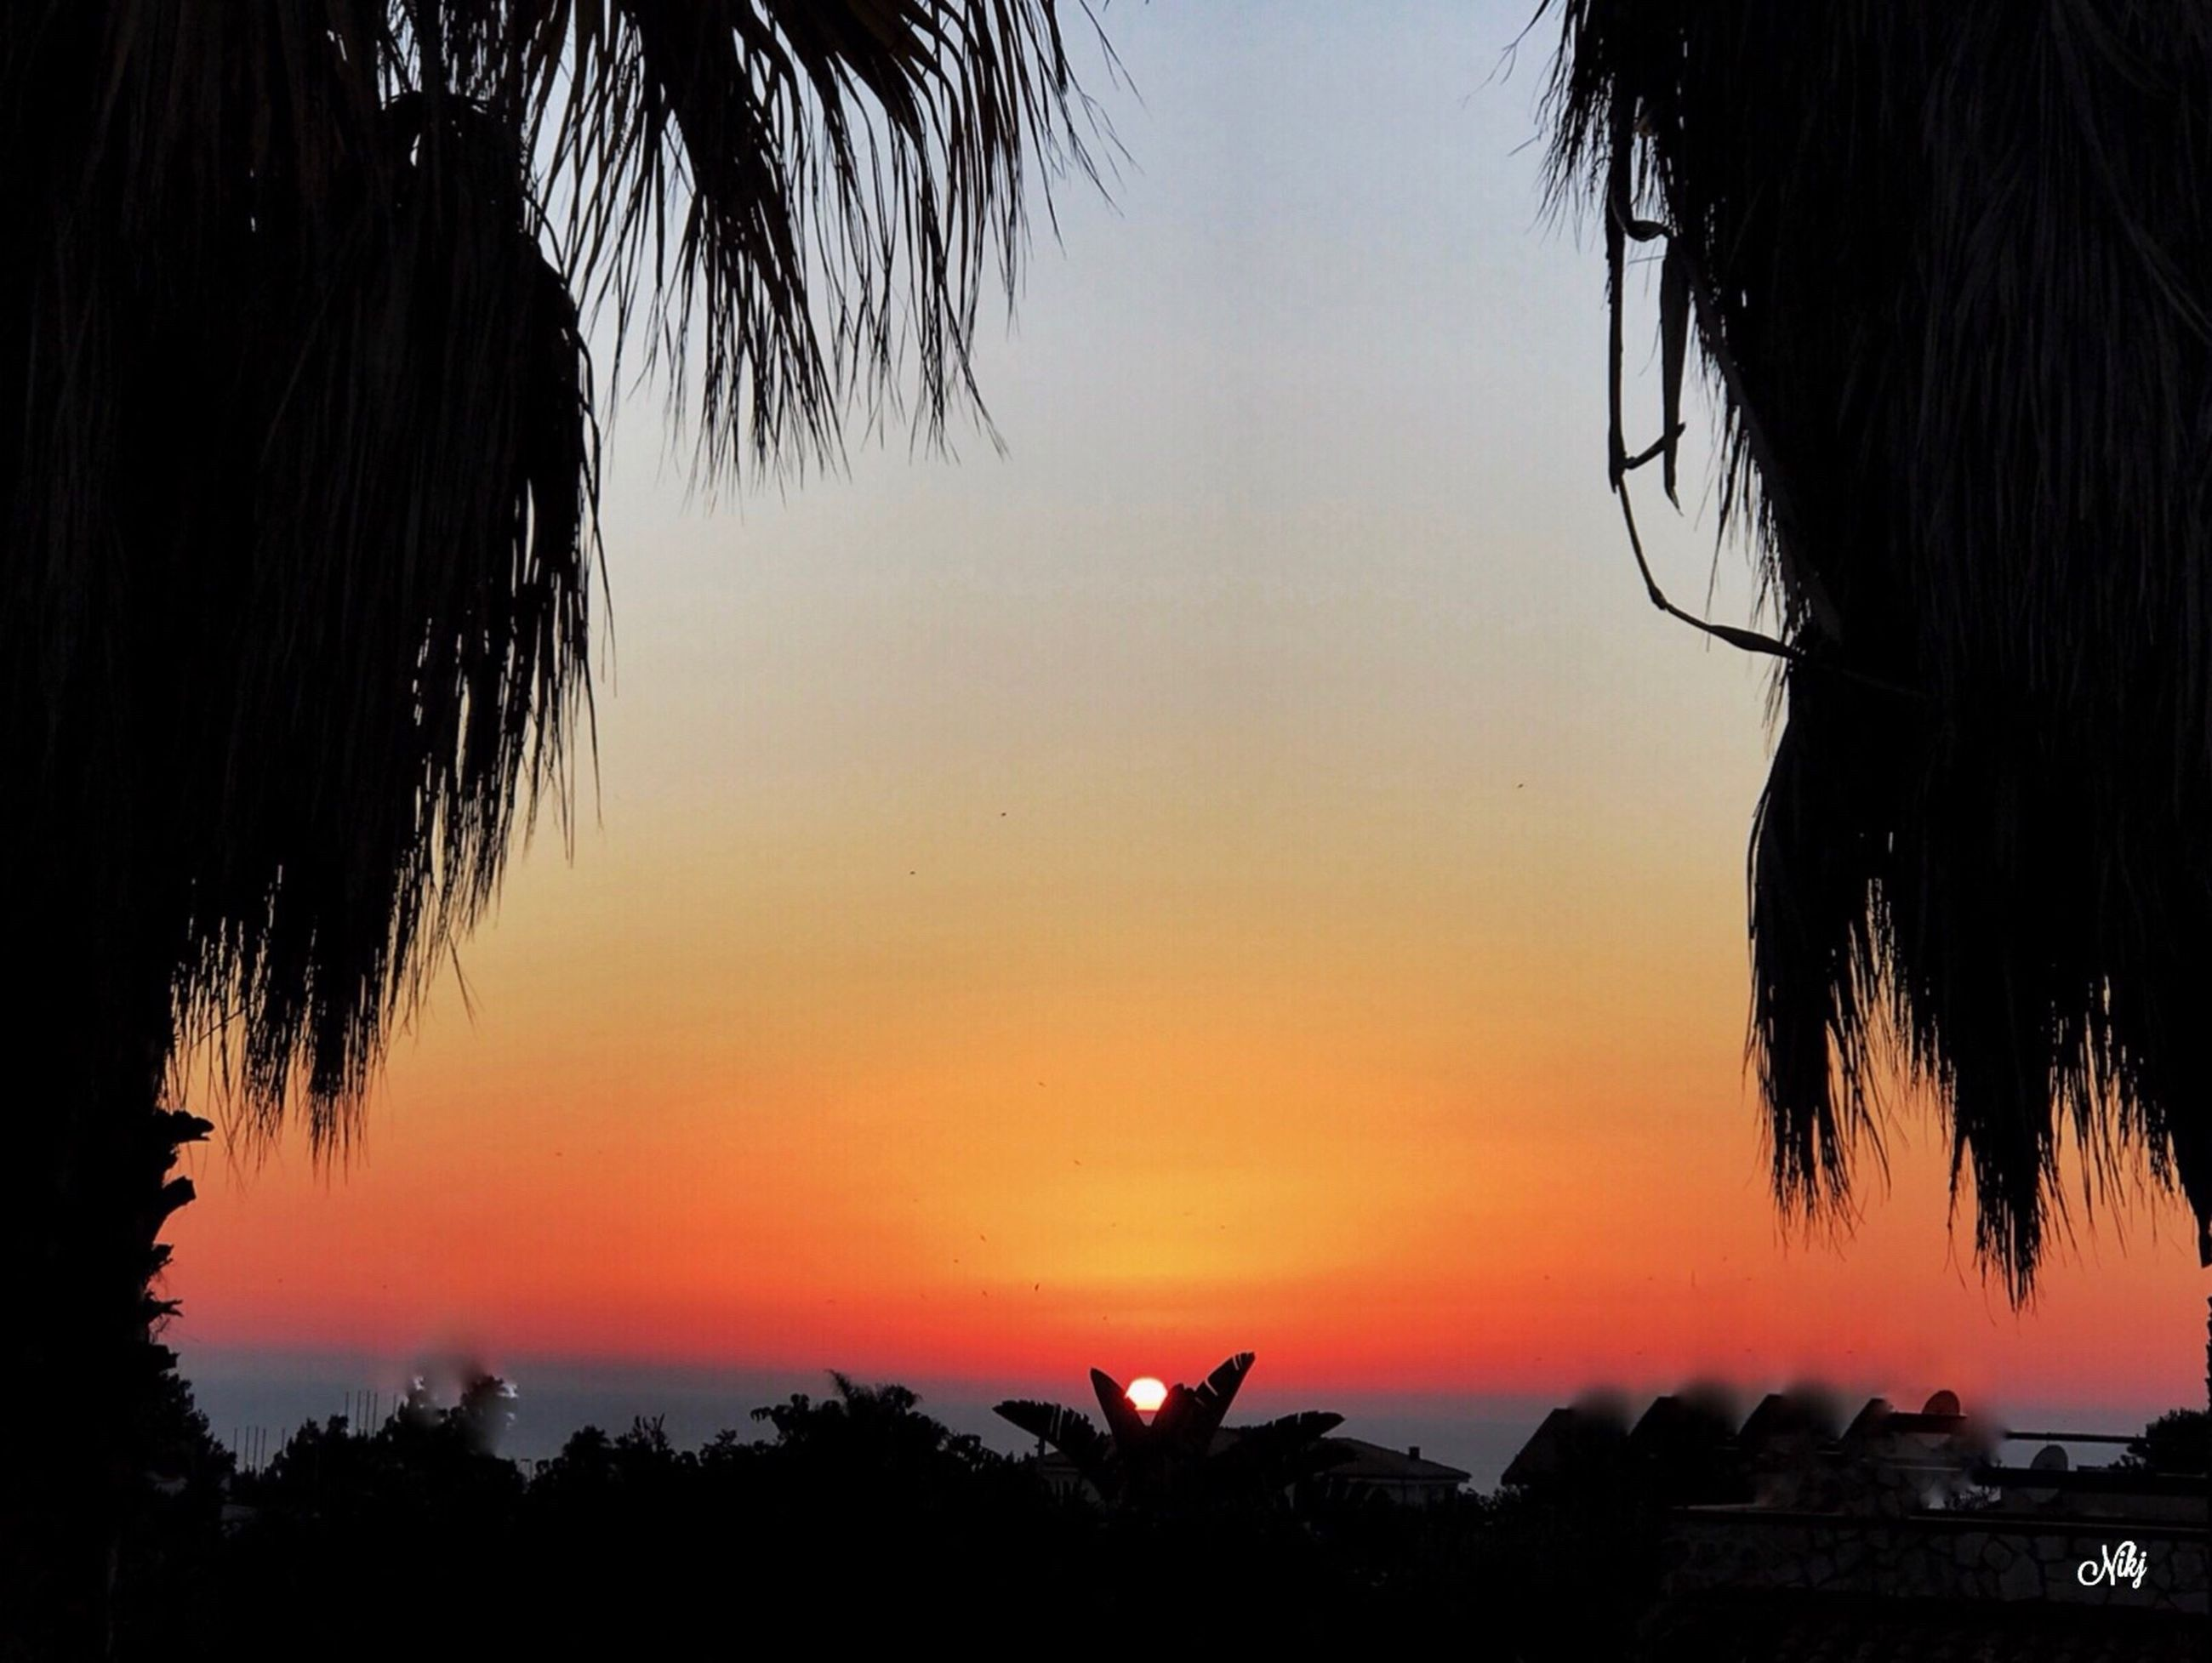 sunset, silhouette, orange color, tree, sky, nature, beauty in nature, scenics, outdoors, no people, animal themes, day